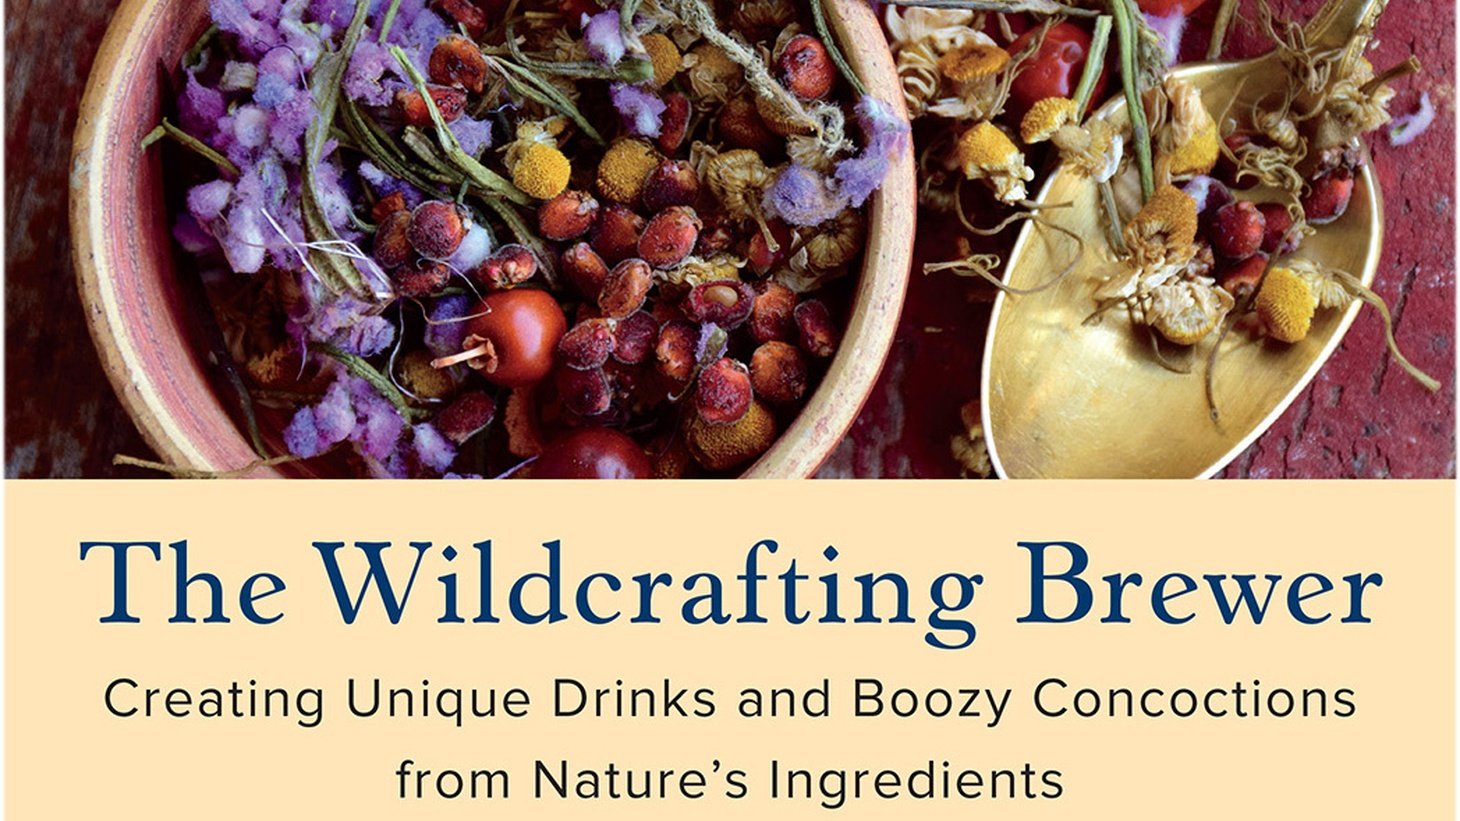 """""""The Wildcrafting Brewer: Creating Unique Drinks and Boozy Concoctions from Nature's Ingredients"""" by Pascal Baudar."""